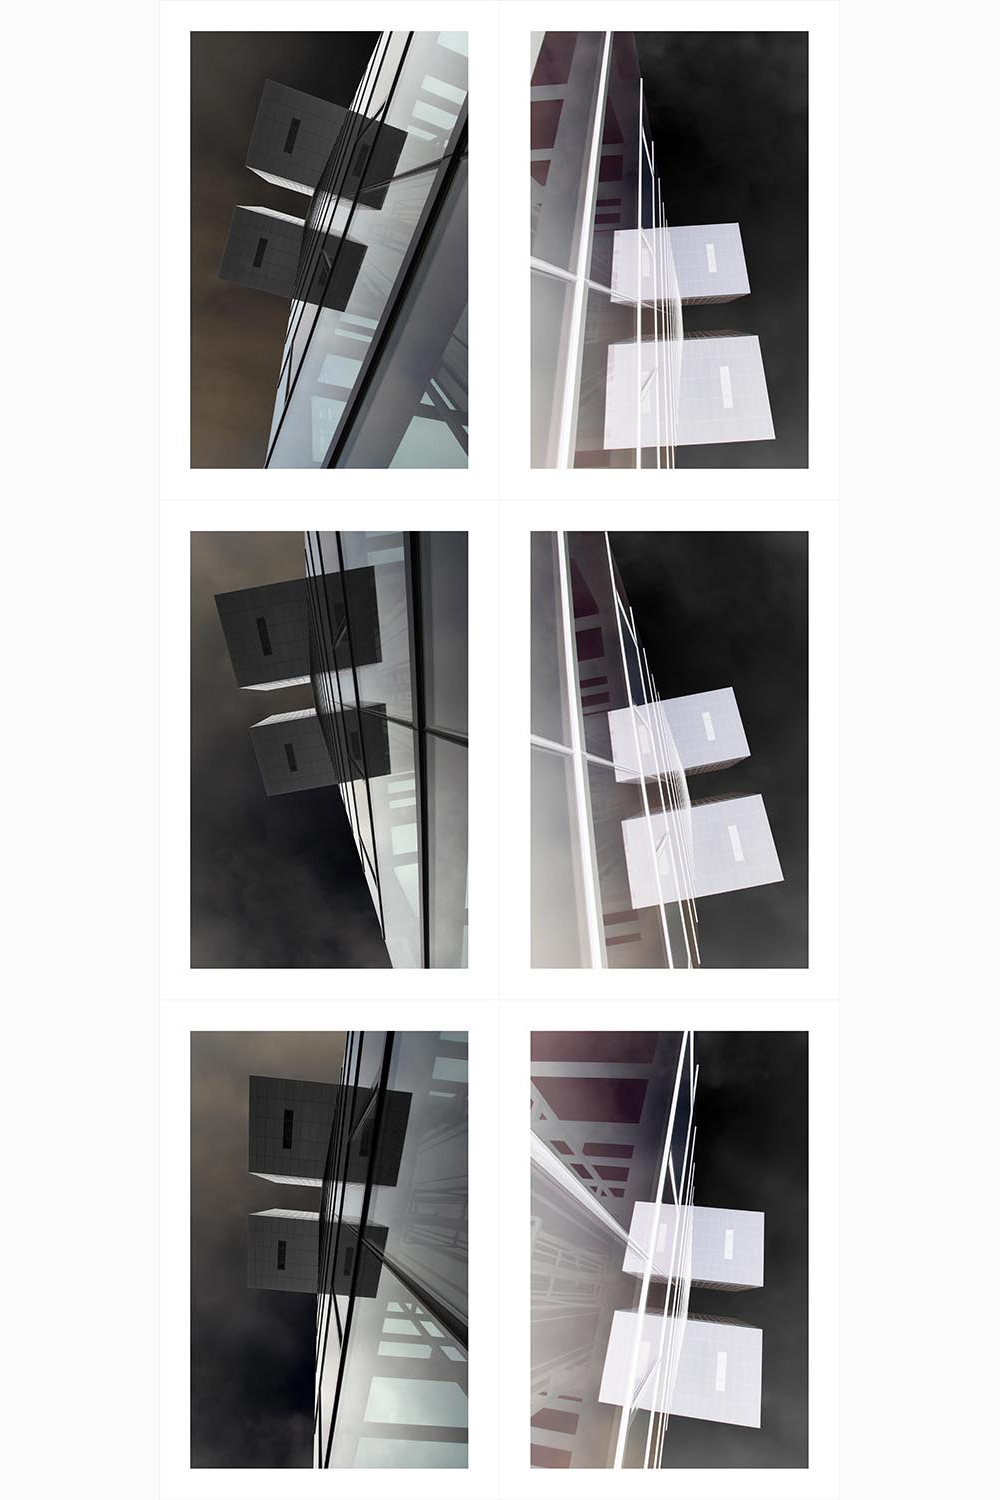 Spinal Structure in Transformation  2015  Archival inkjet on cotton rag paper  145cm high x 66cm wide  6 panels, each 48.3cm high x 33cm wide